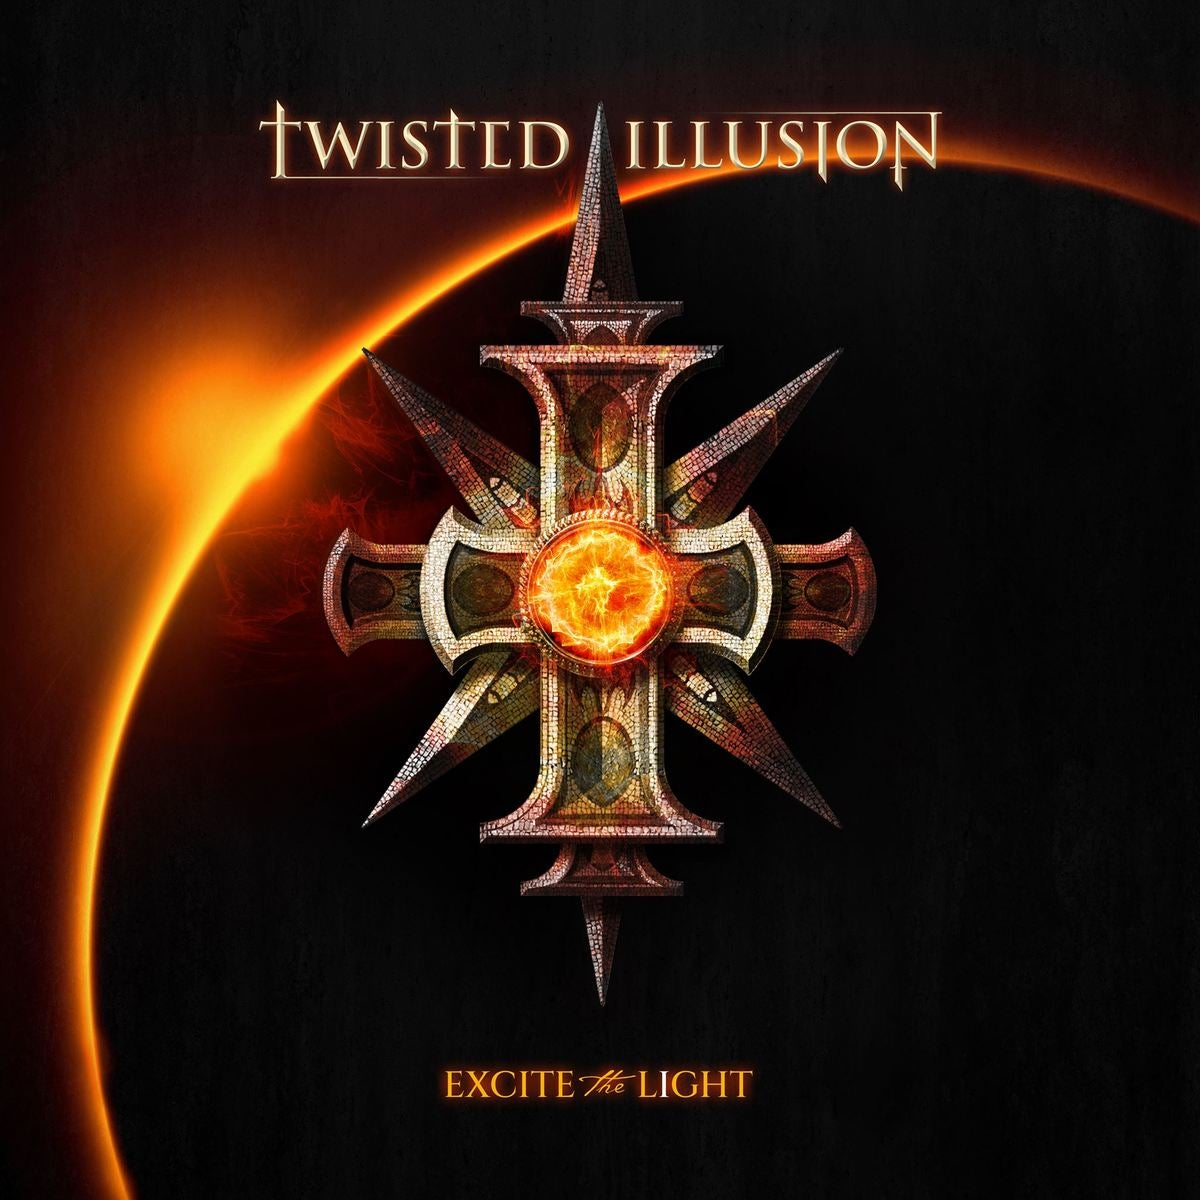 Twisted illusion's account image